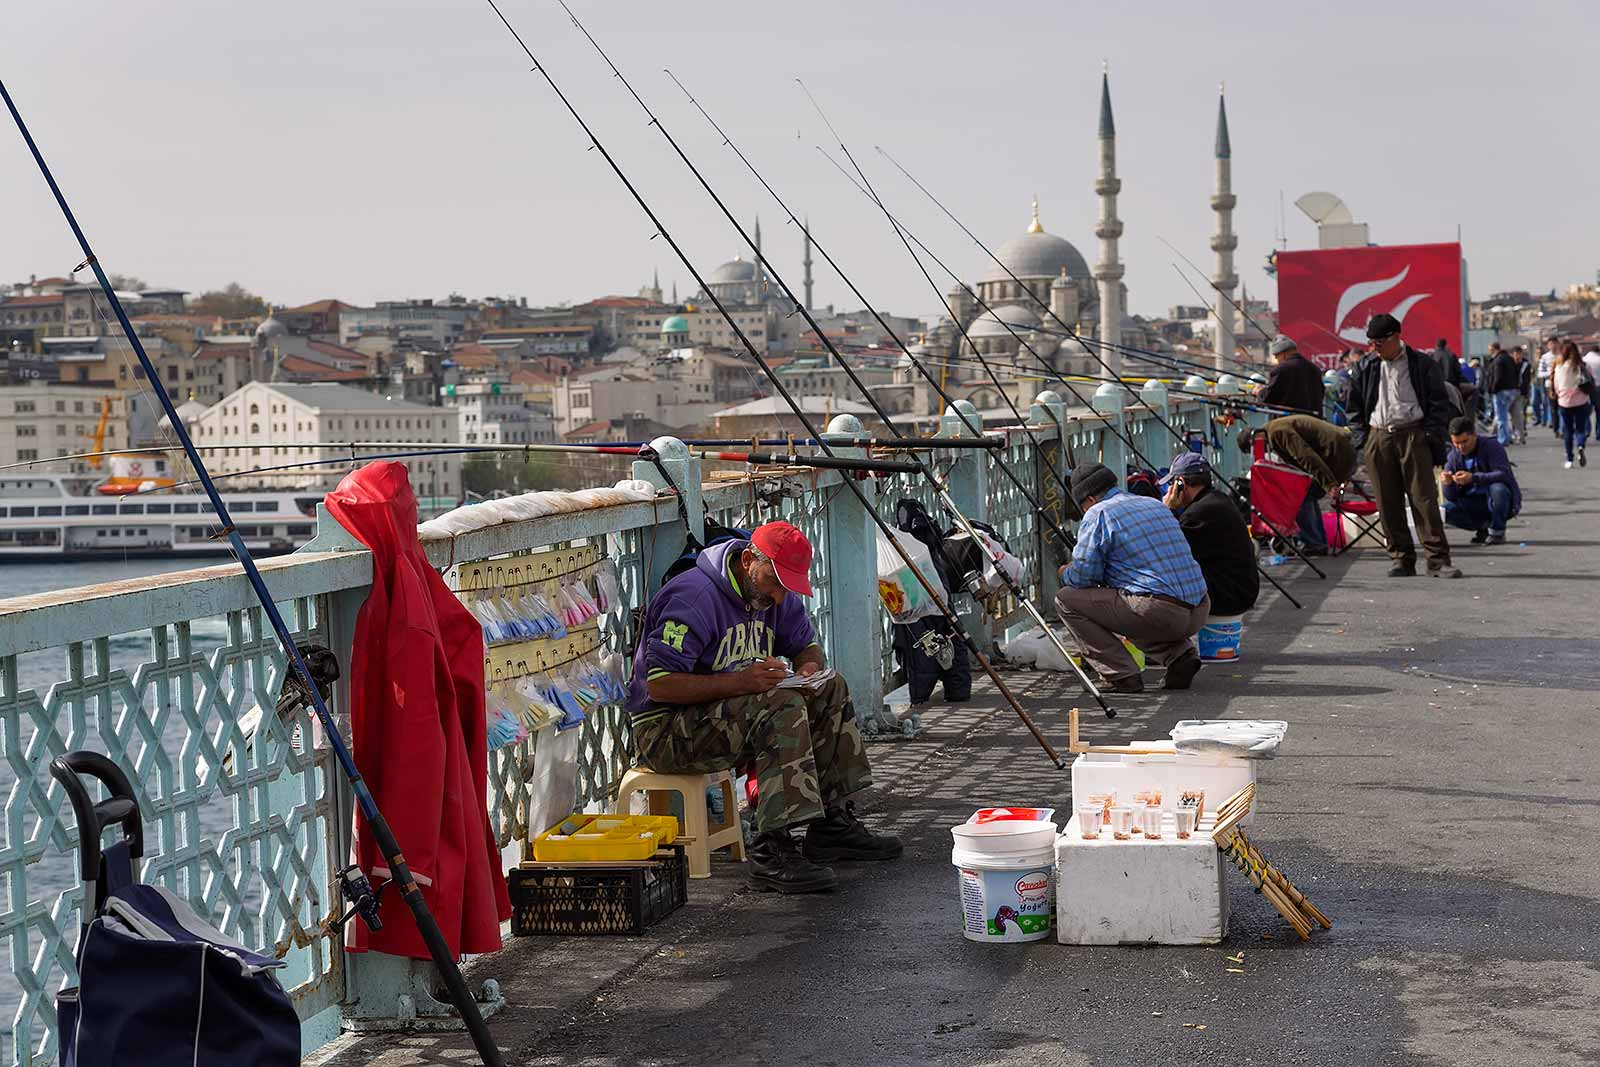 fishermen-galata-bridge-istanbul-turkey